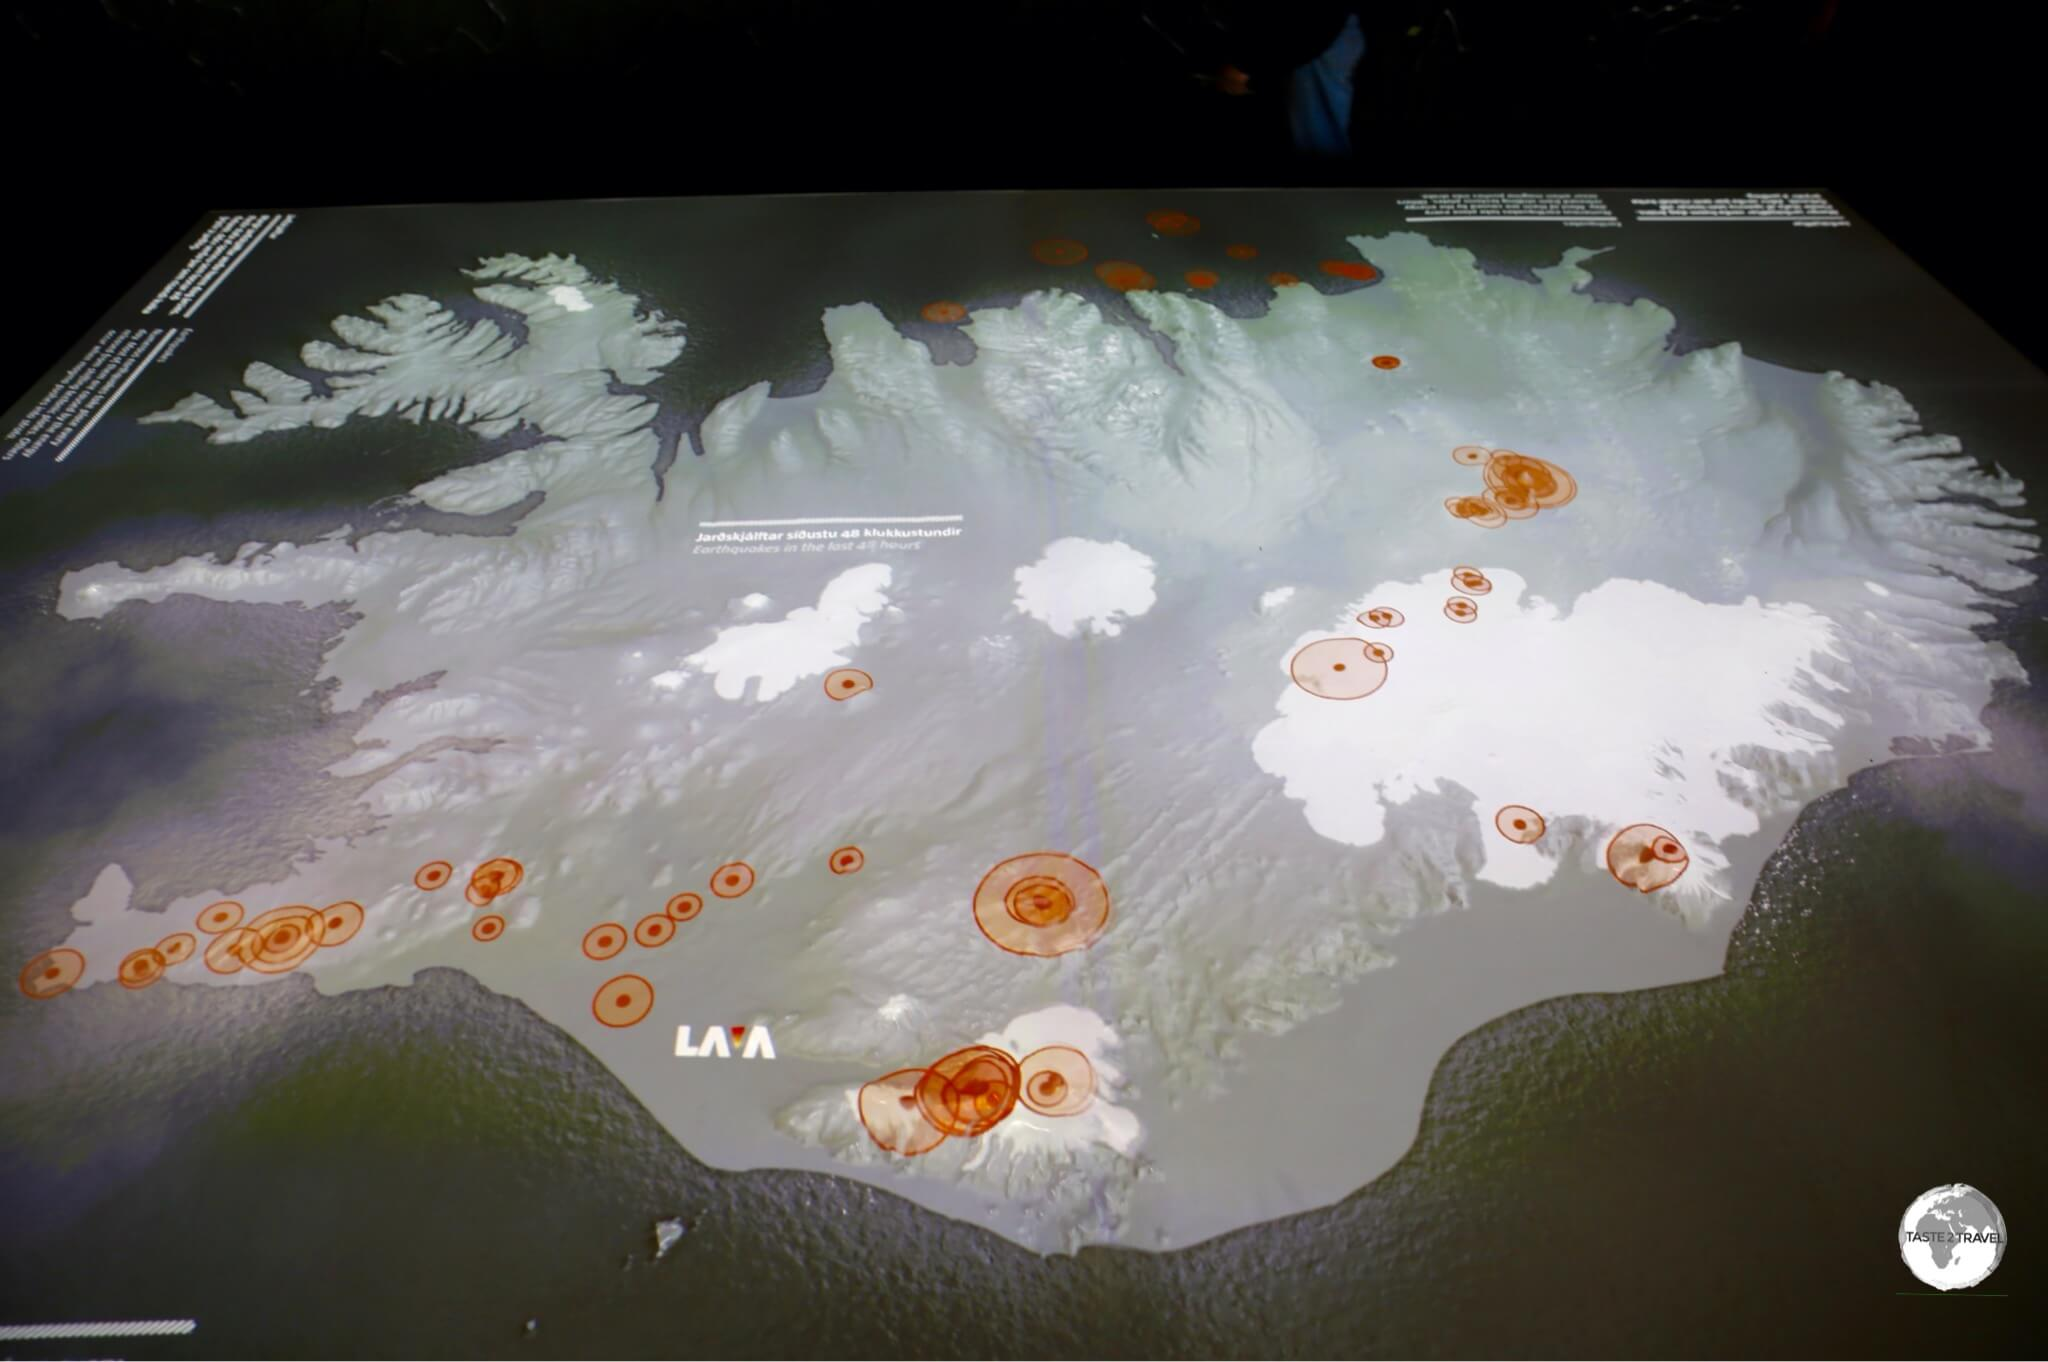 Orange circles on a map of Iceland at the Lava Centre indicate earthquake activity in the last 24 hours.